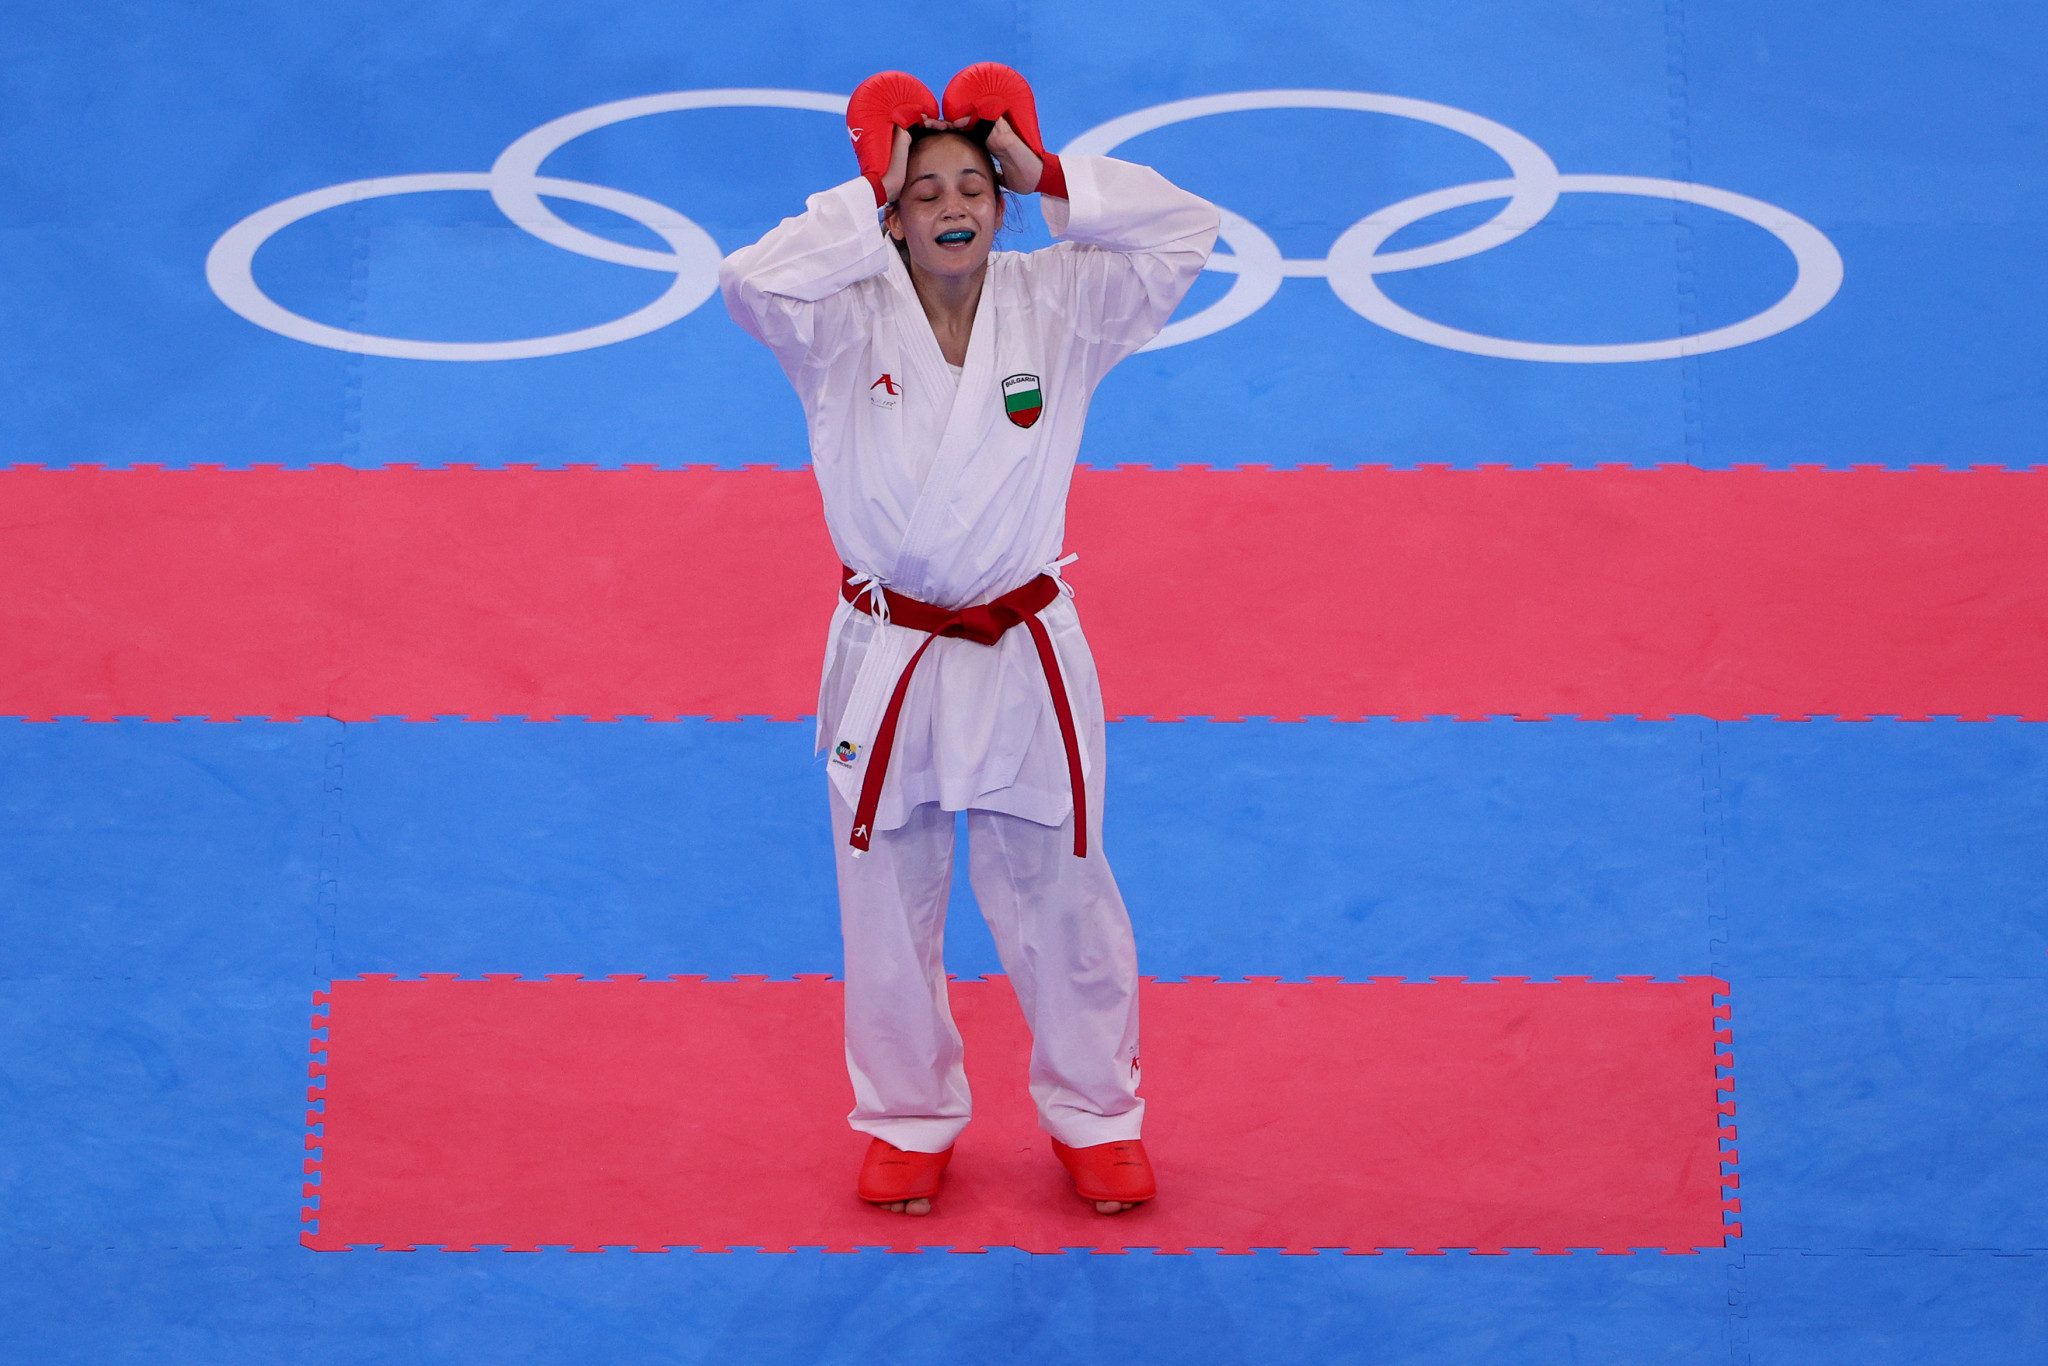 Ivet Goranova tasted glory on the first night of Olympic karate finals ©Getty Images